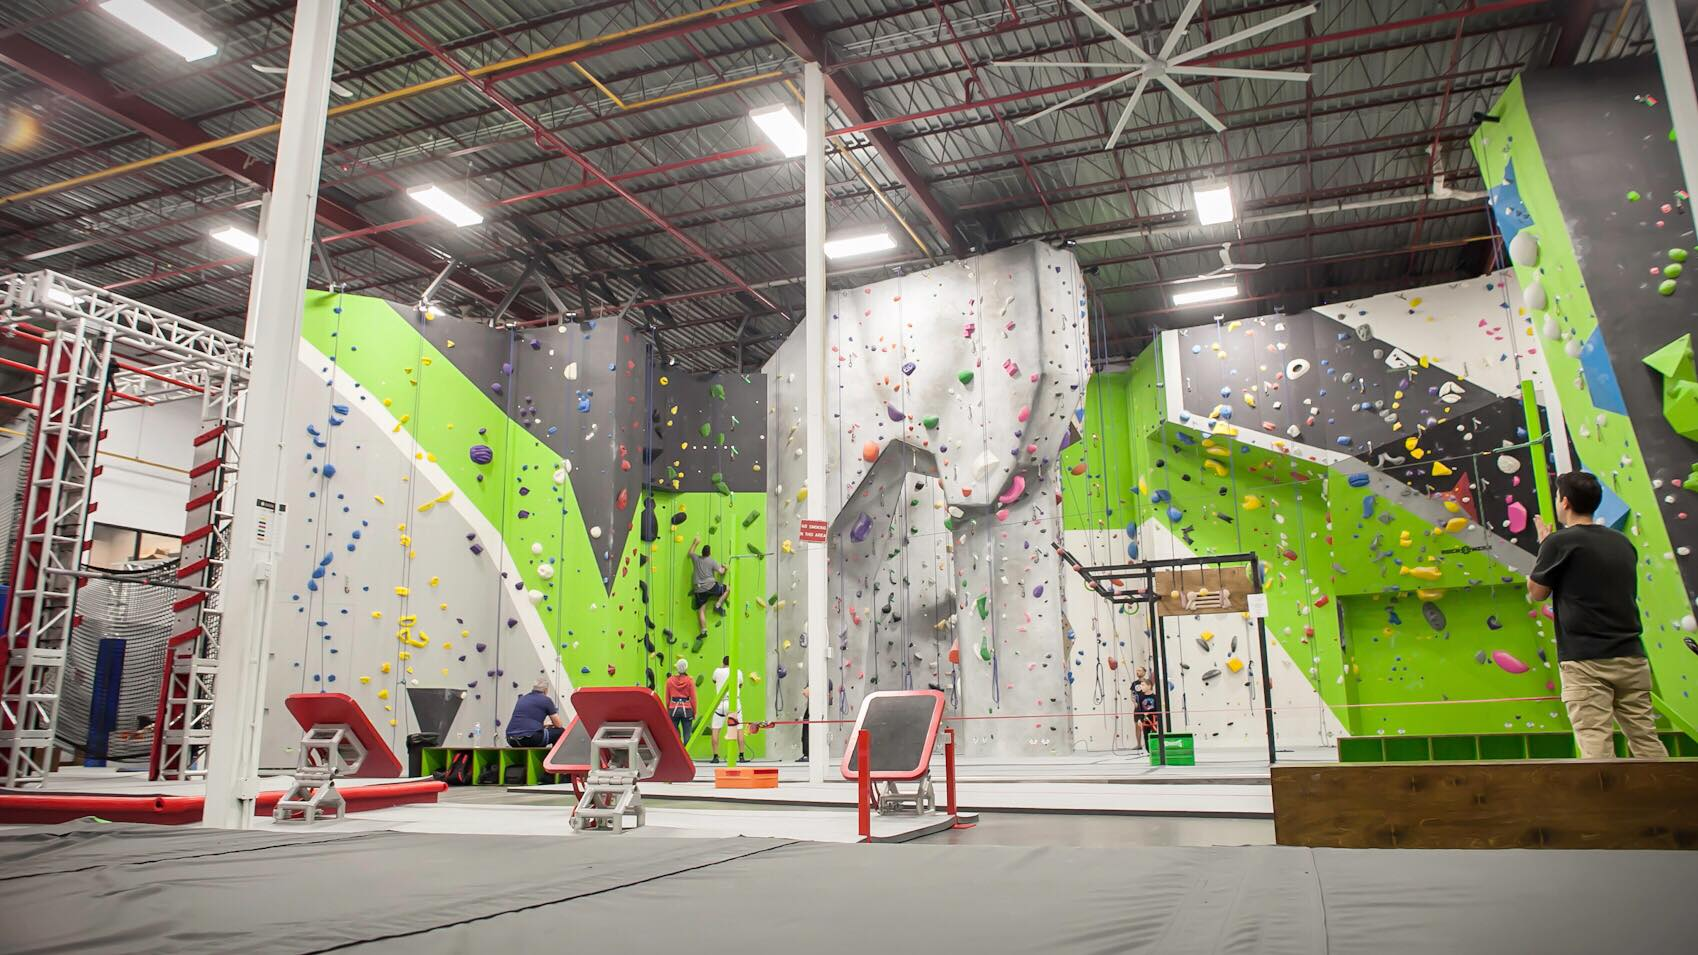 The ninja course co-existing with the climbing walls at Aspire Climbing.